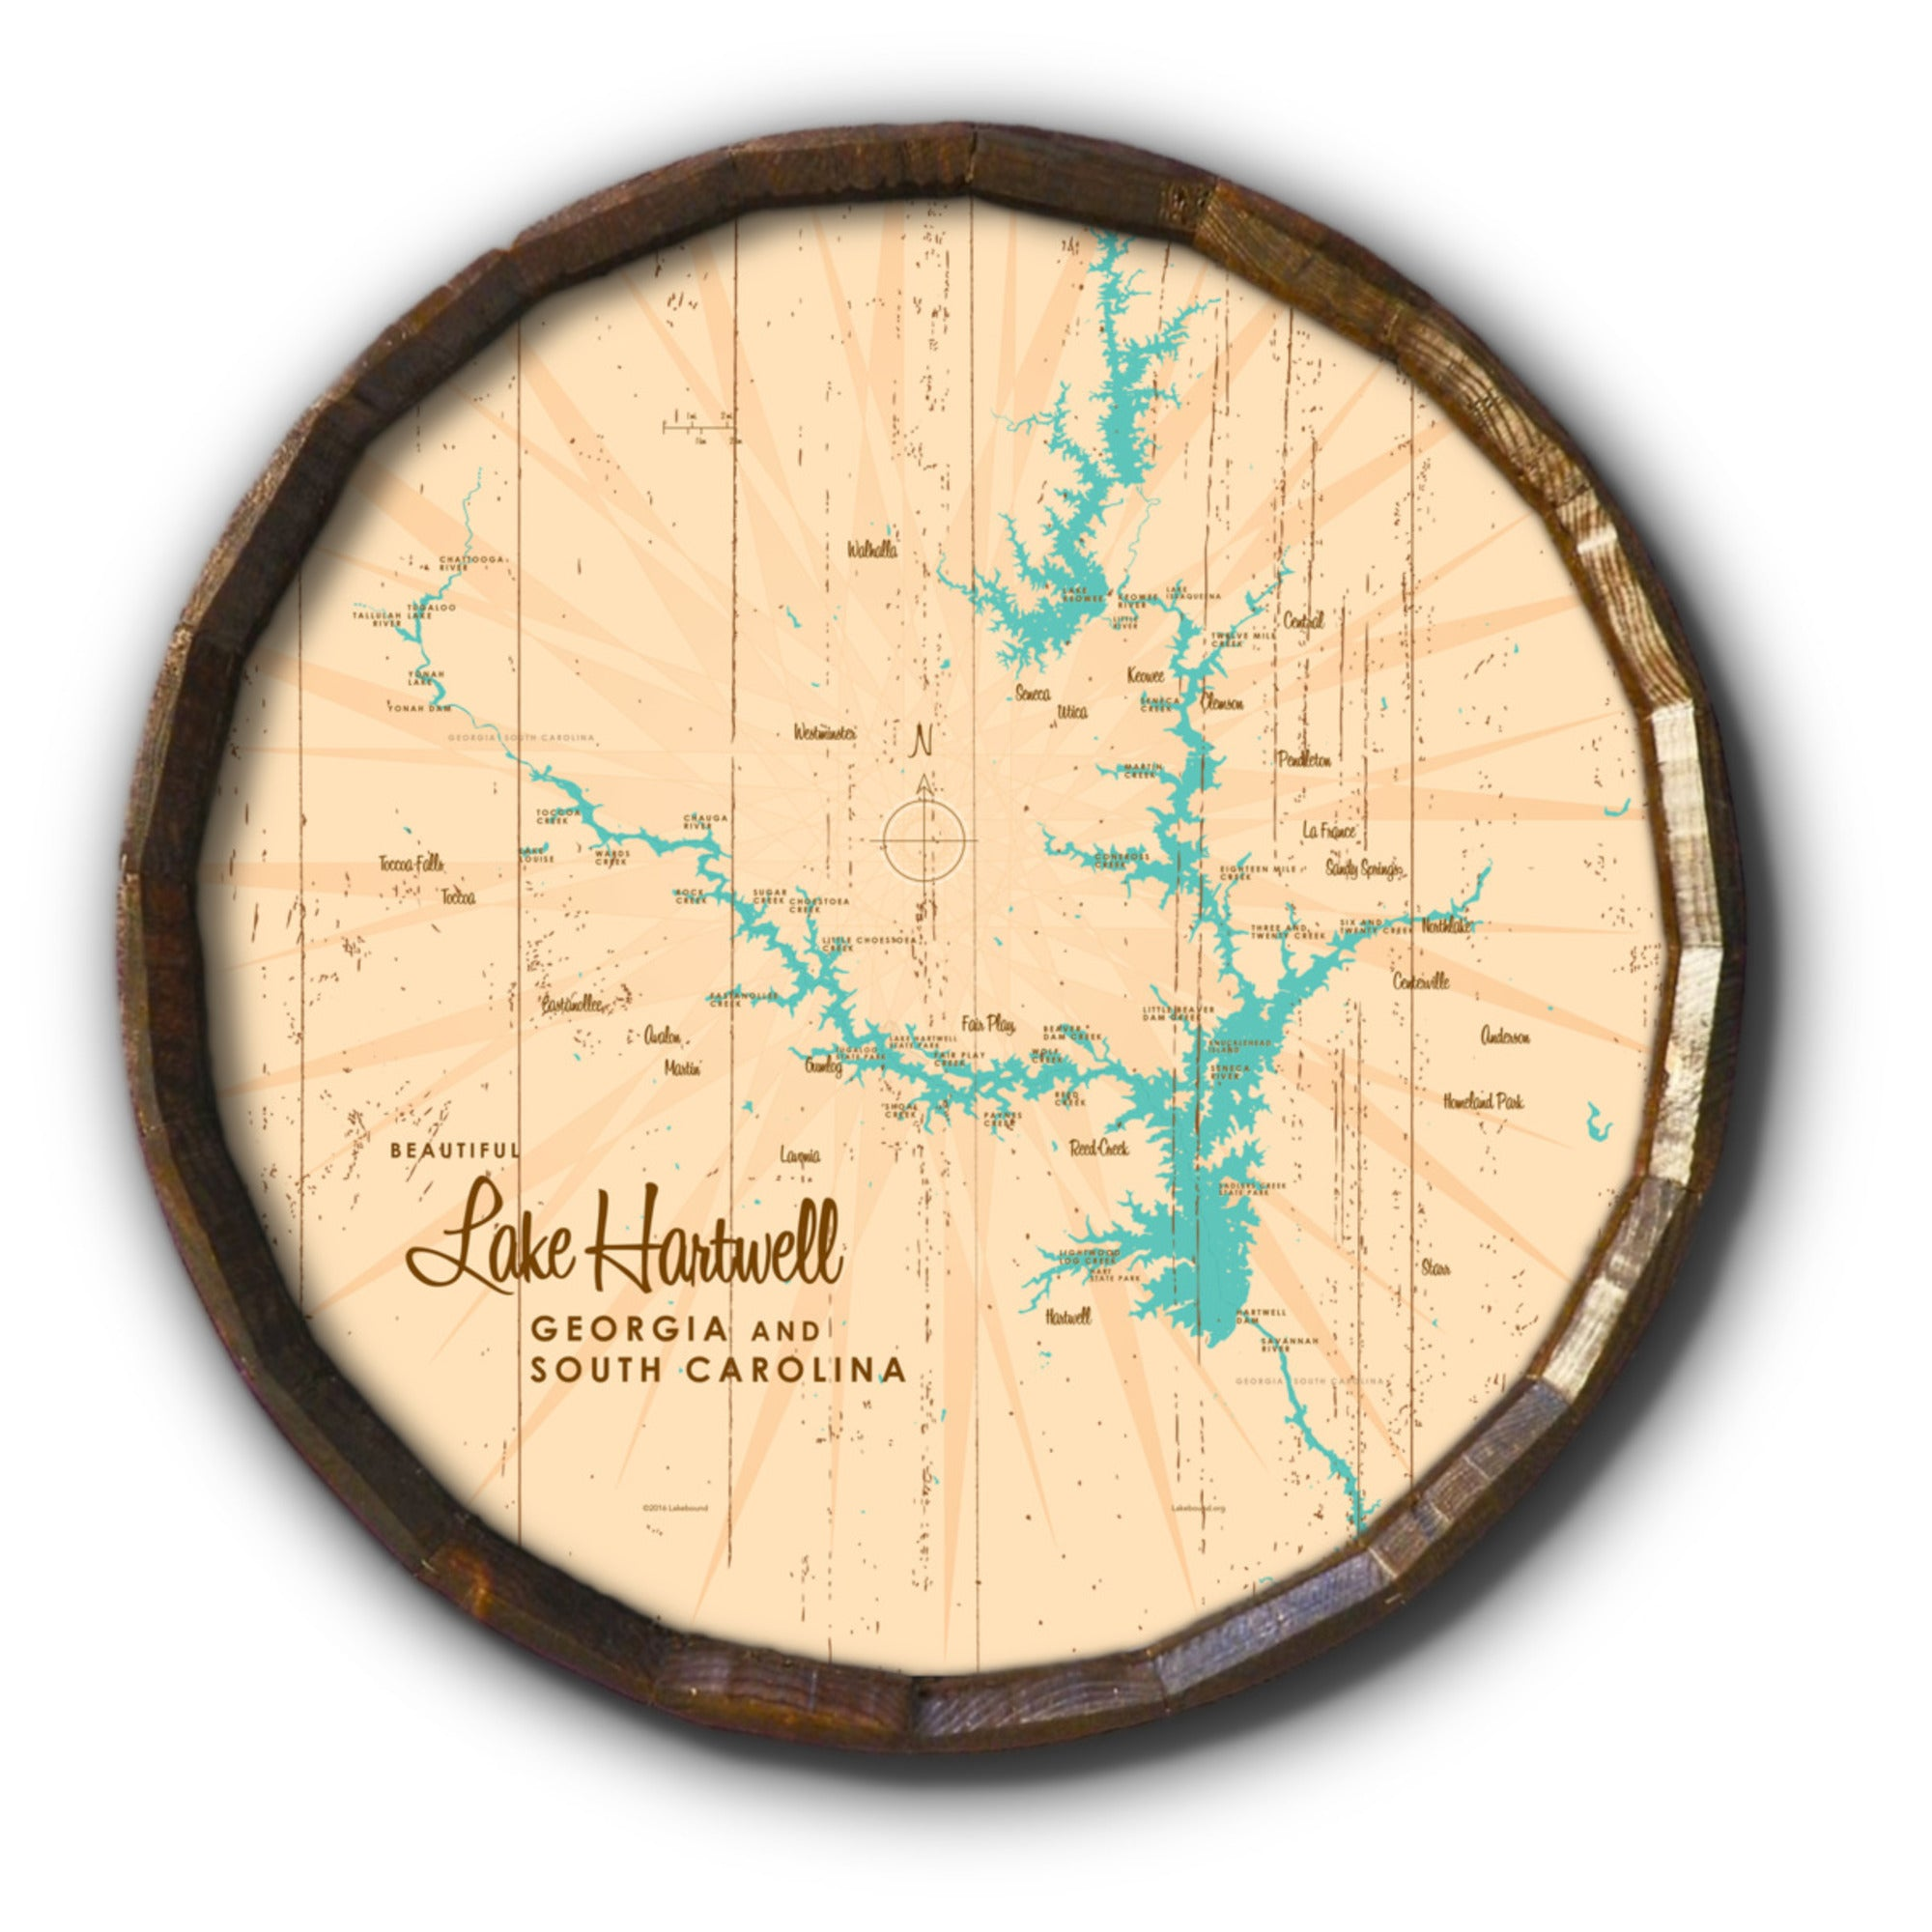 Lake Hartwell, Rustic Barrel End Map Art